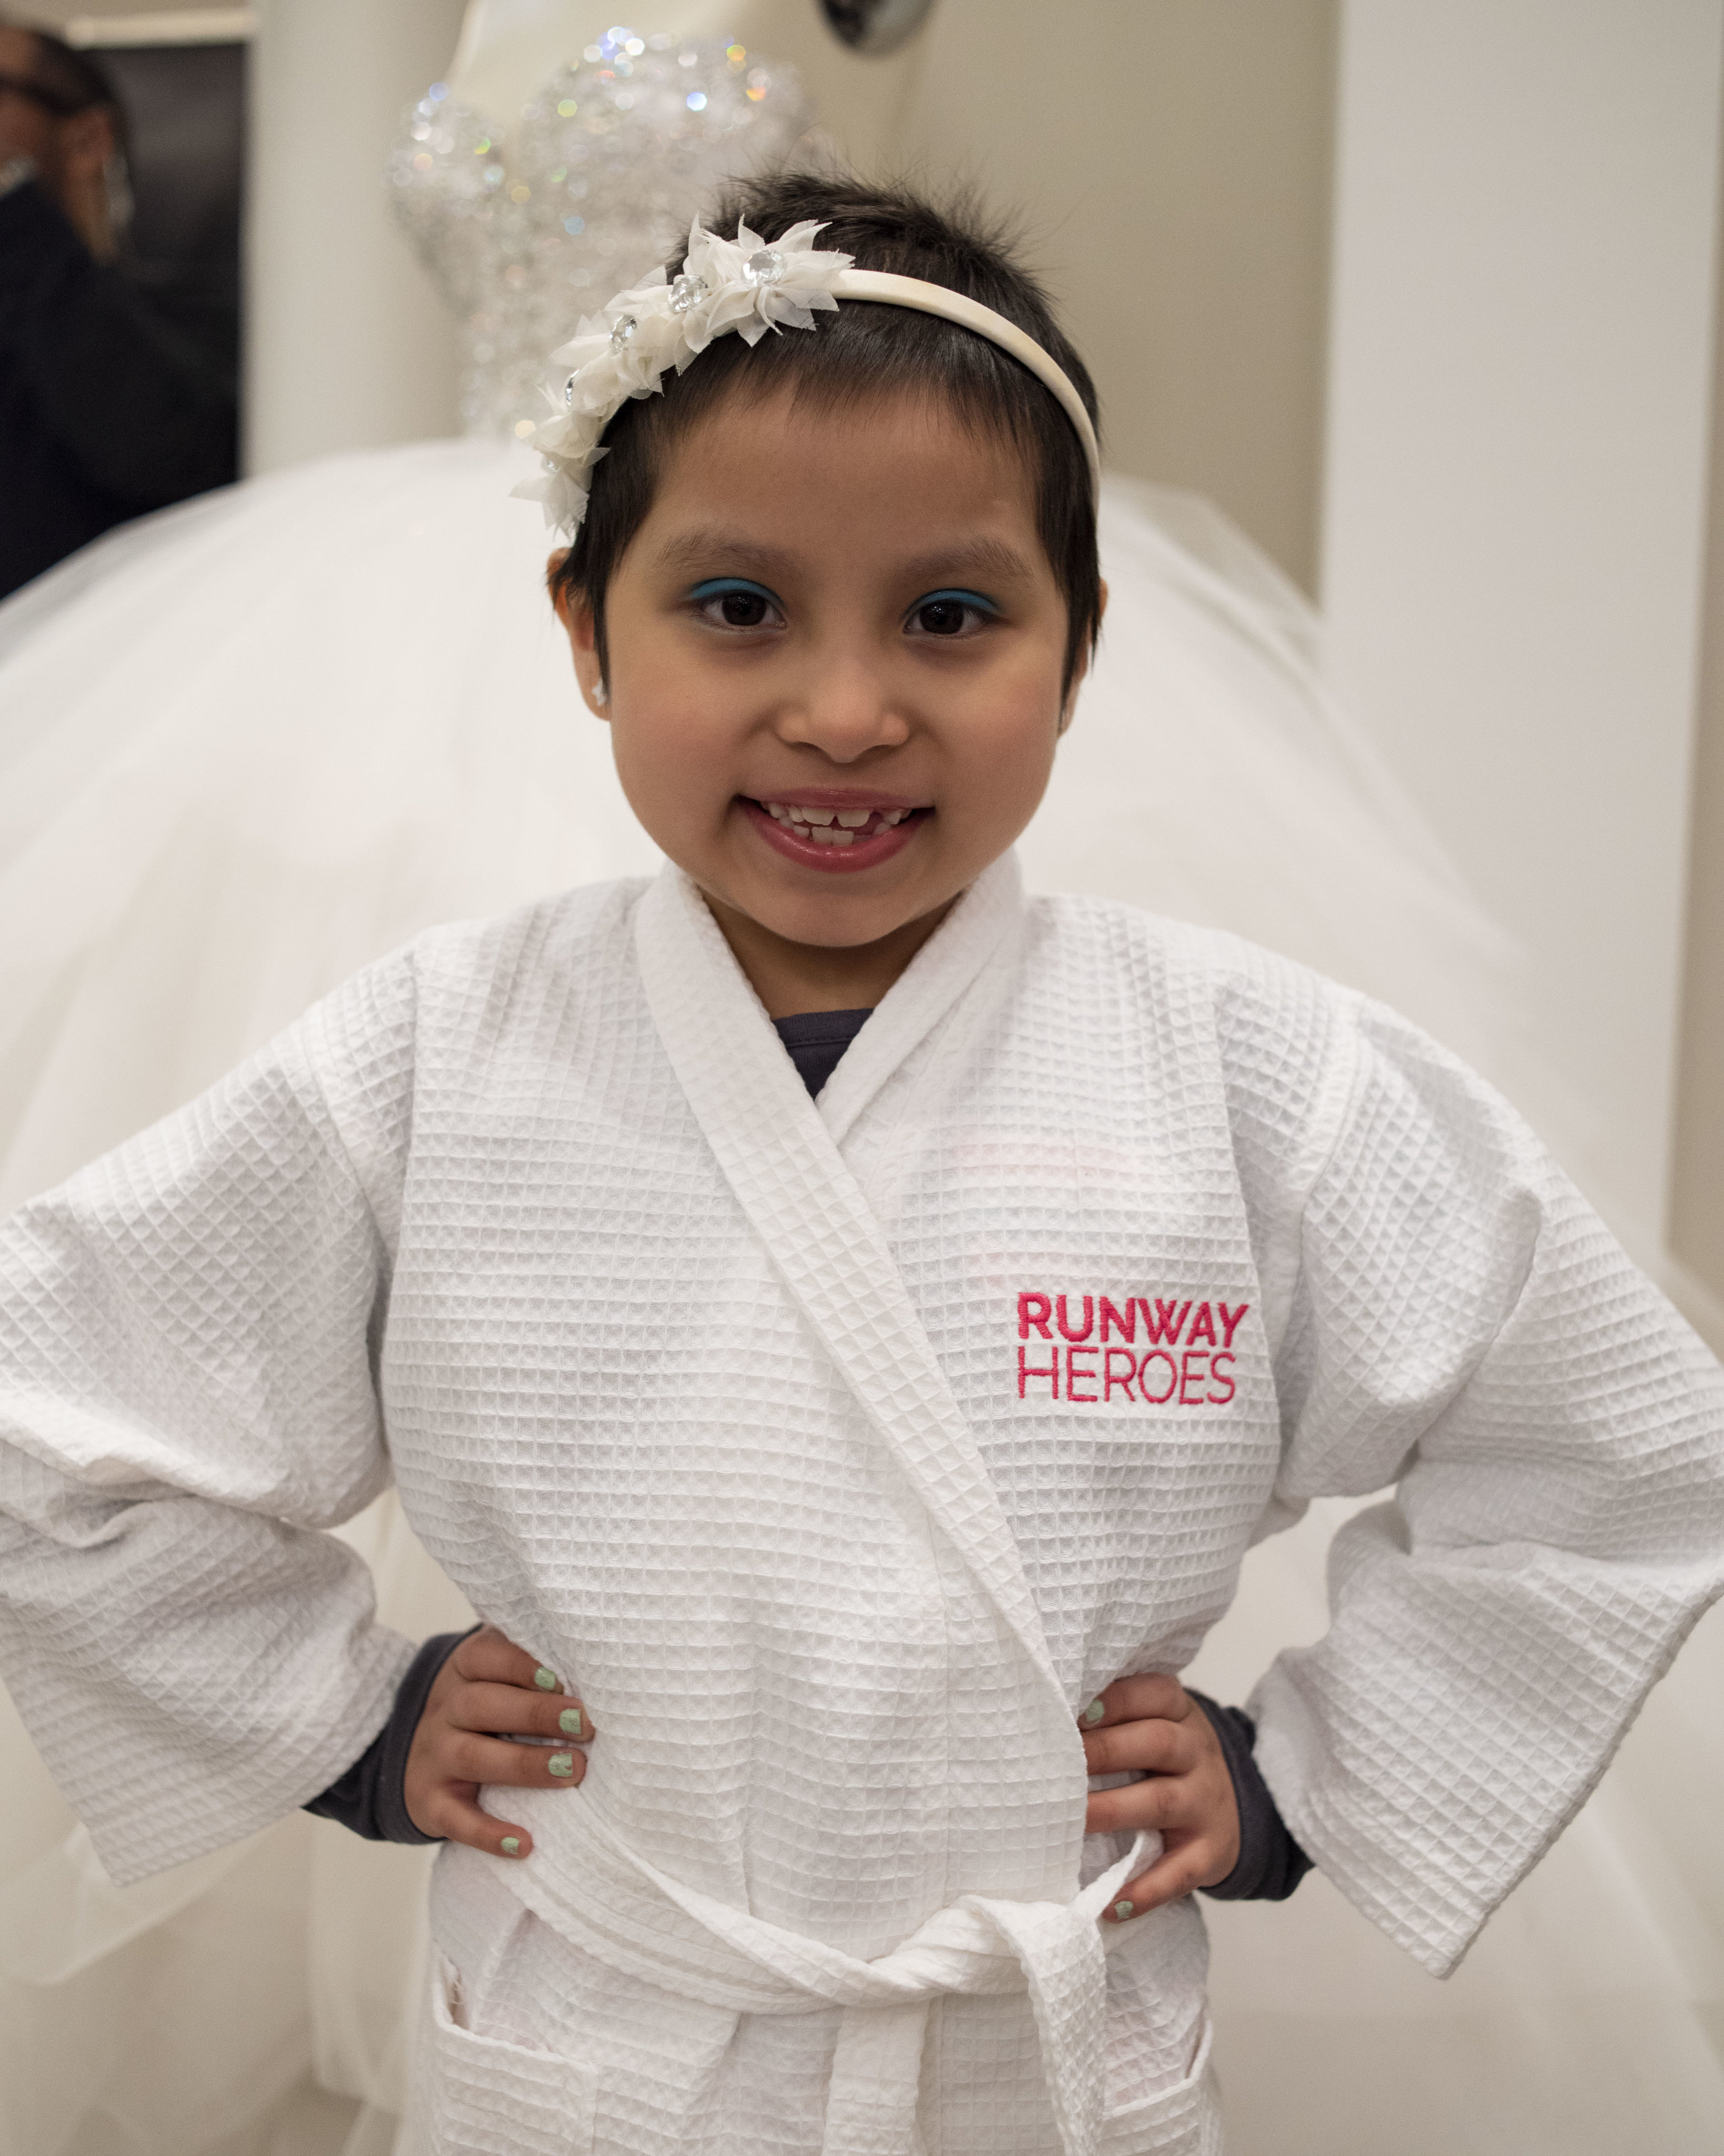 RUNWAY HEROES… - is a non-profit organization that features children with cancer in fashion events. For more information please visit them at their website here.